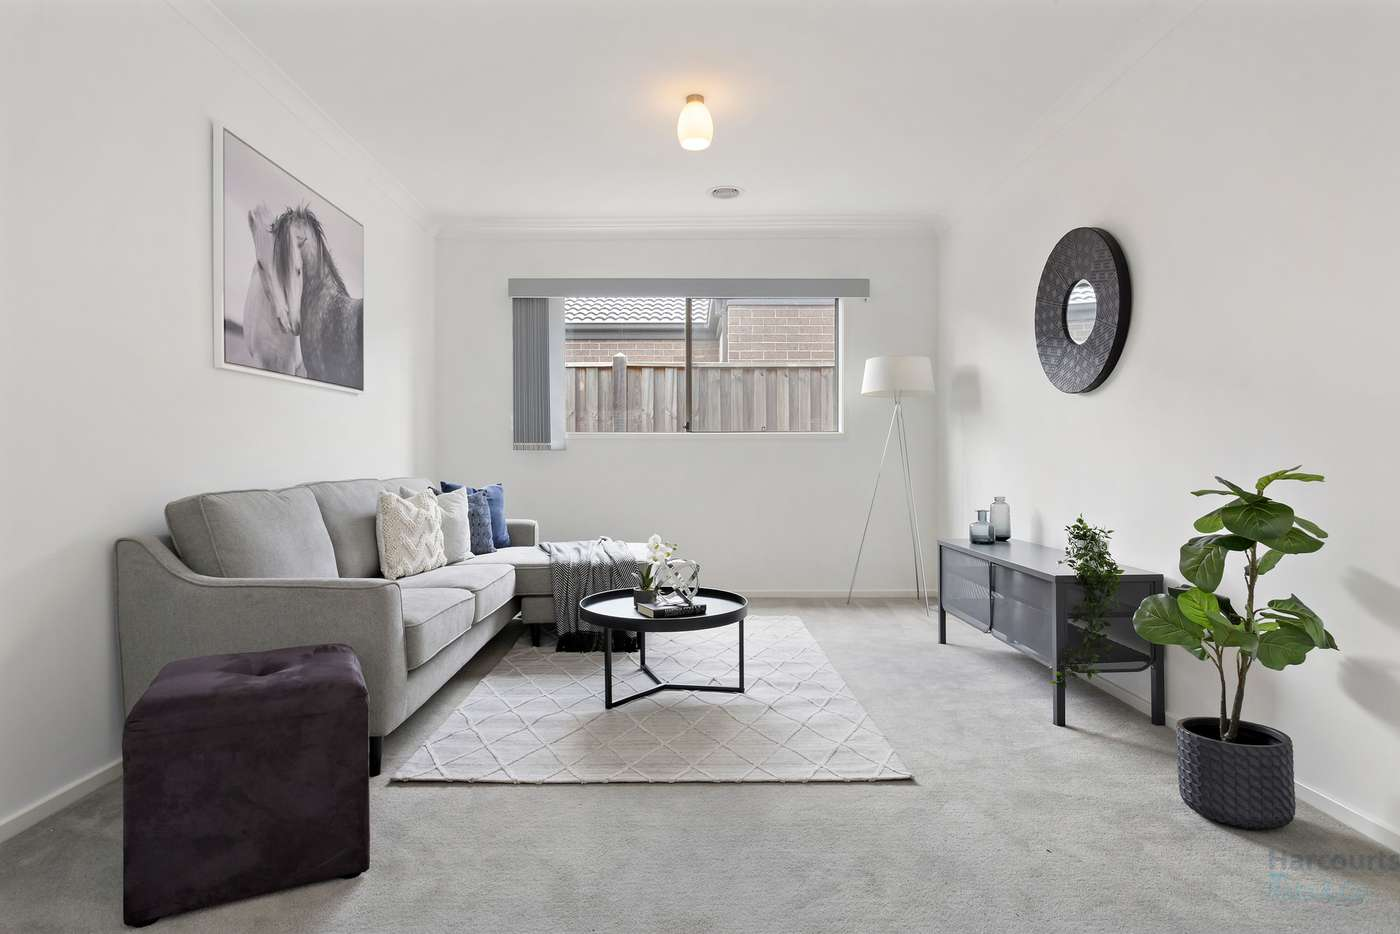 Fifth view of Homely house listing, 30 Bellavista Drive, Wollert VIC 3750